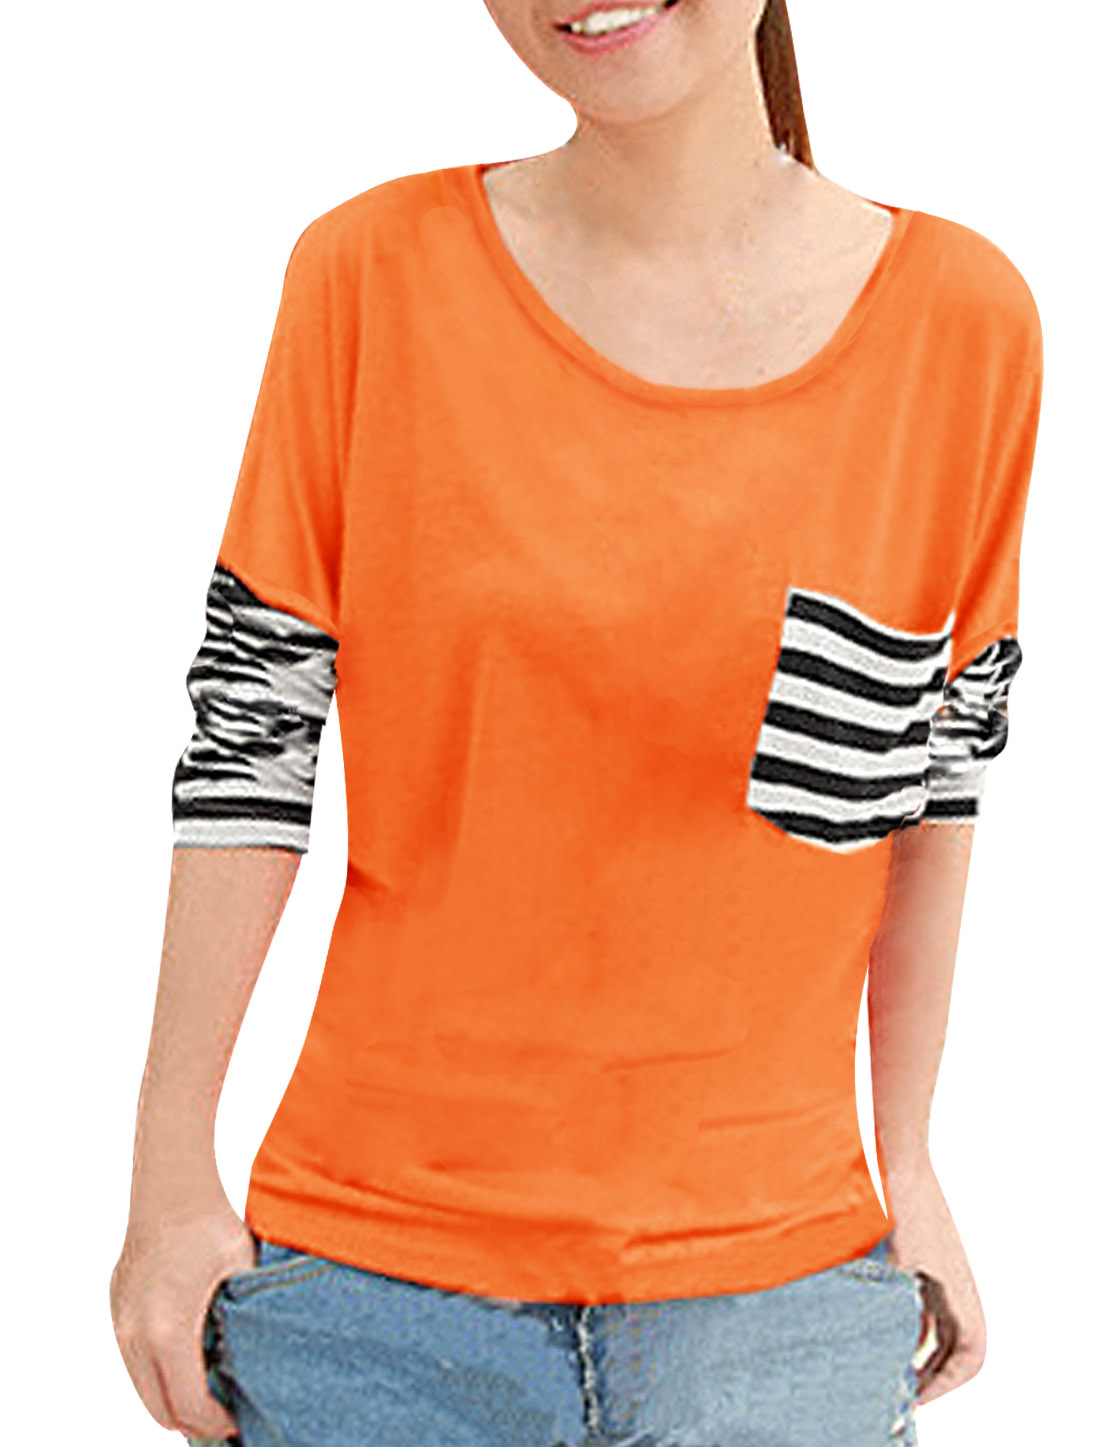 Lady Fashion Orange Color Scoop Neck Dolman Sleeve Spring T-Shirt XL